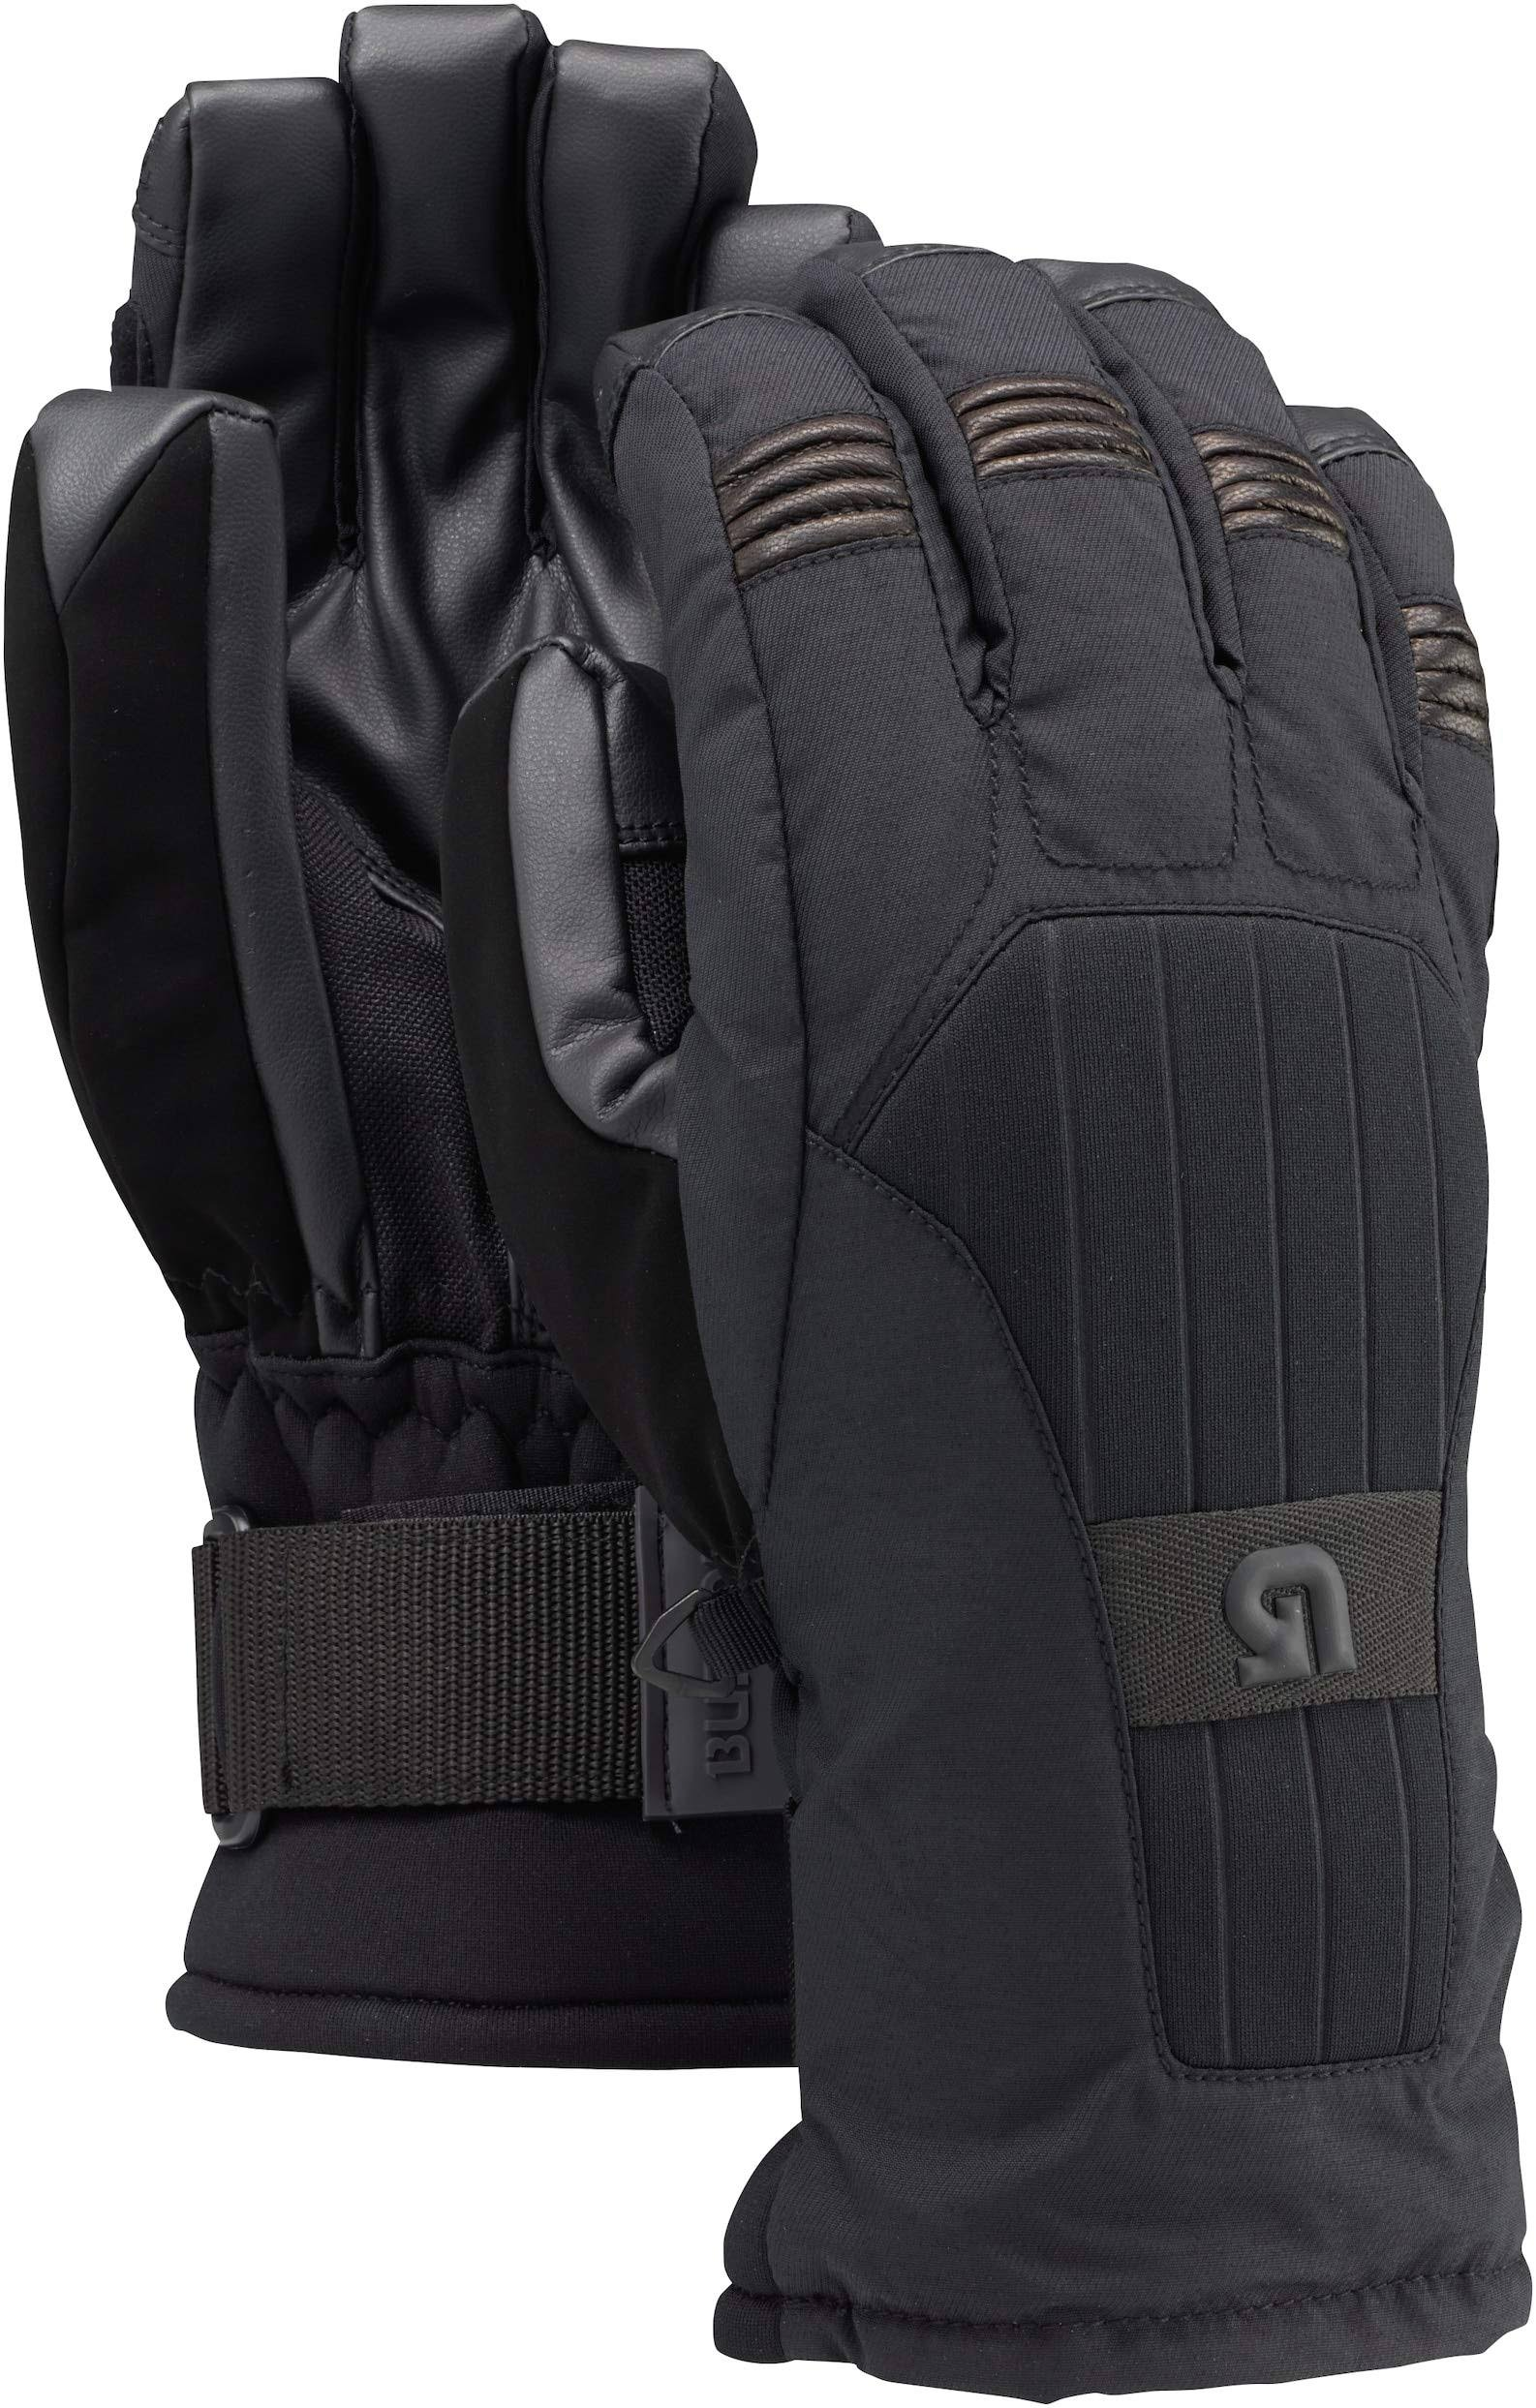 Burton Men's Support Gloves - True Black, X-Large